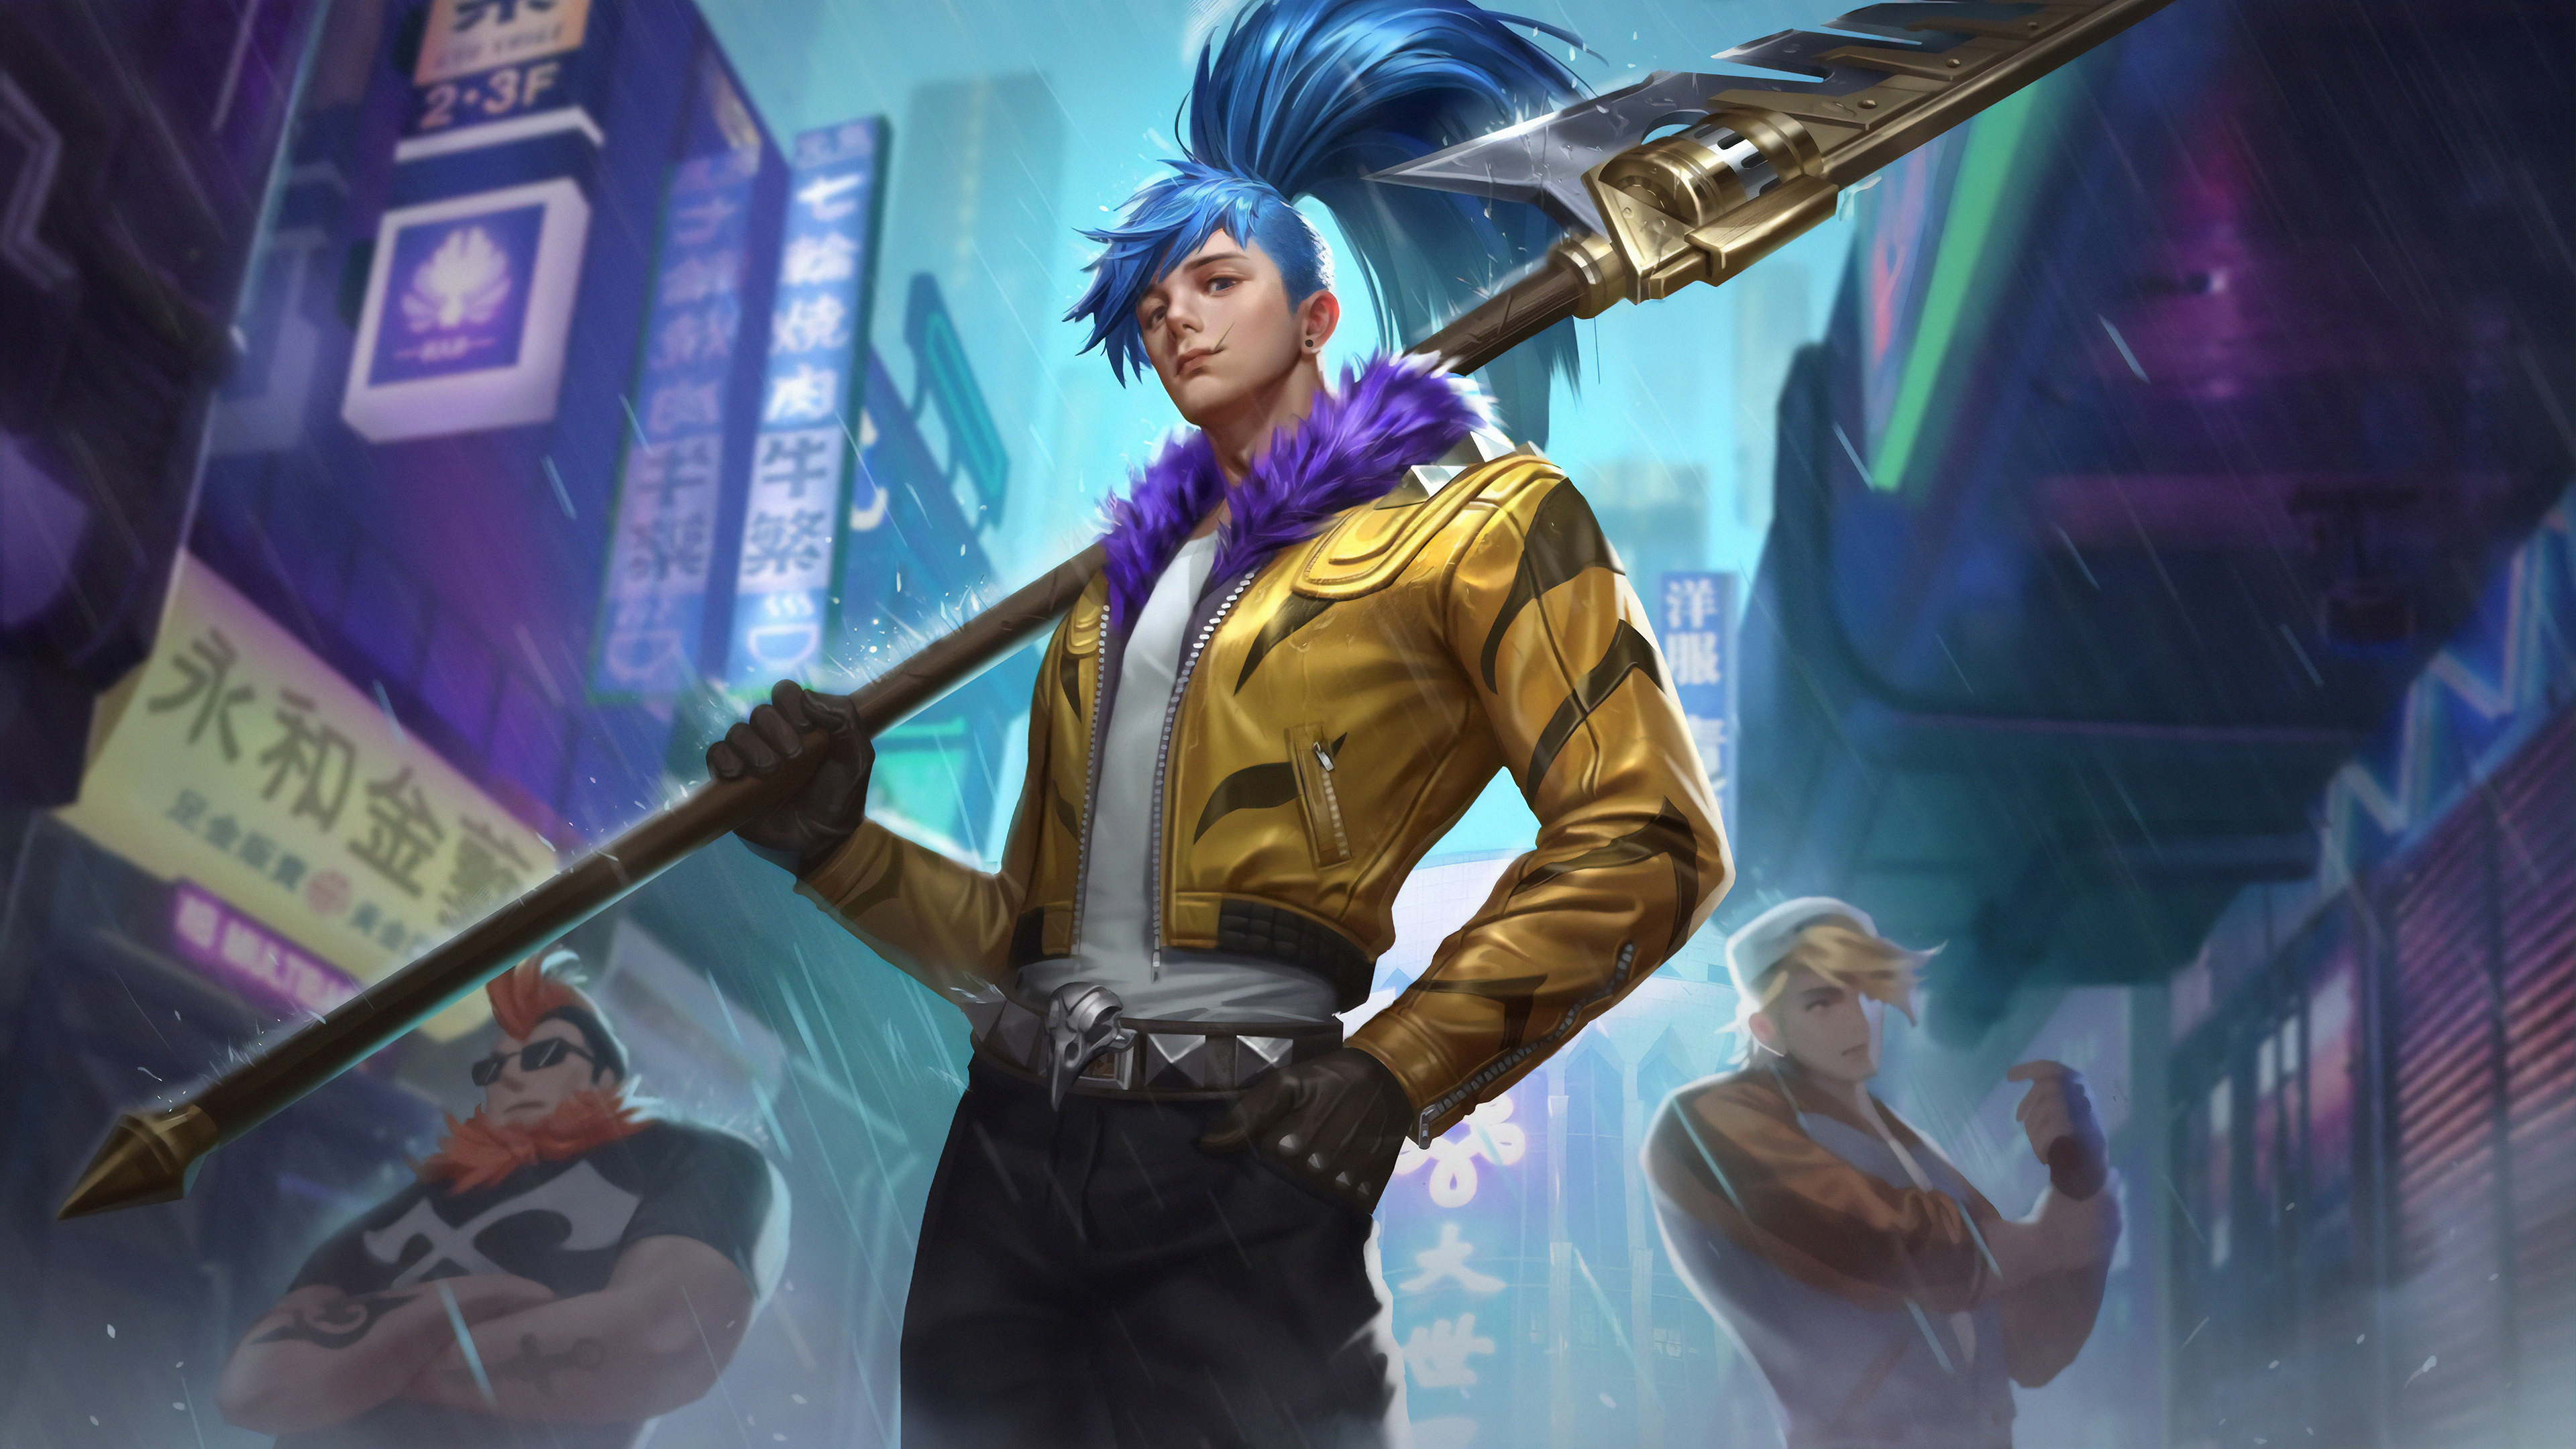 king glory hanshin street fighter 1570393538 - King Glory Hanshin Street Fighter - king glory wallpapers, hd-wallpapers, games wallpapers, artstation wallpapers, 4k-wallpapers